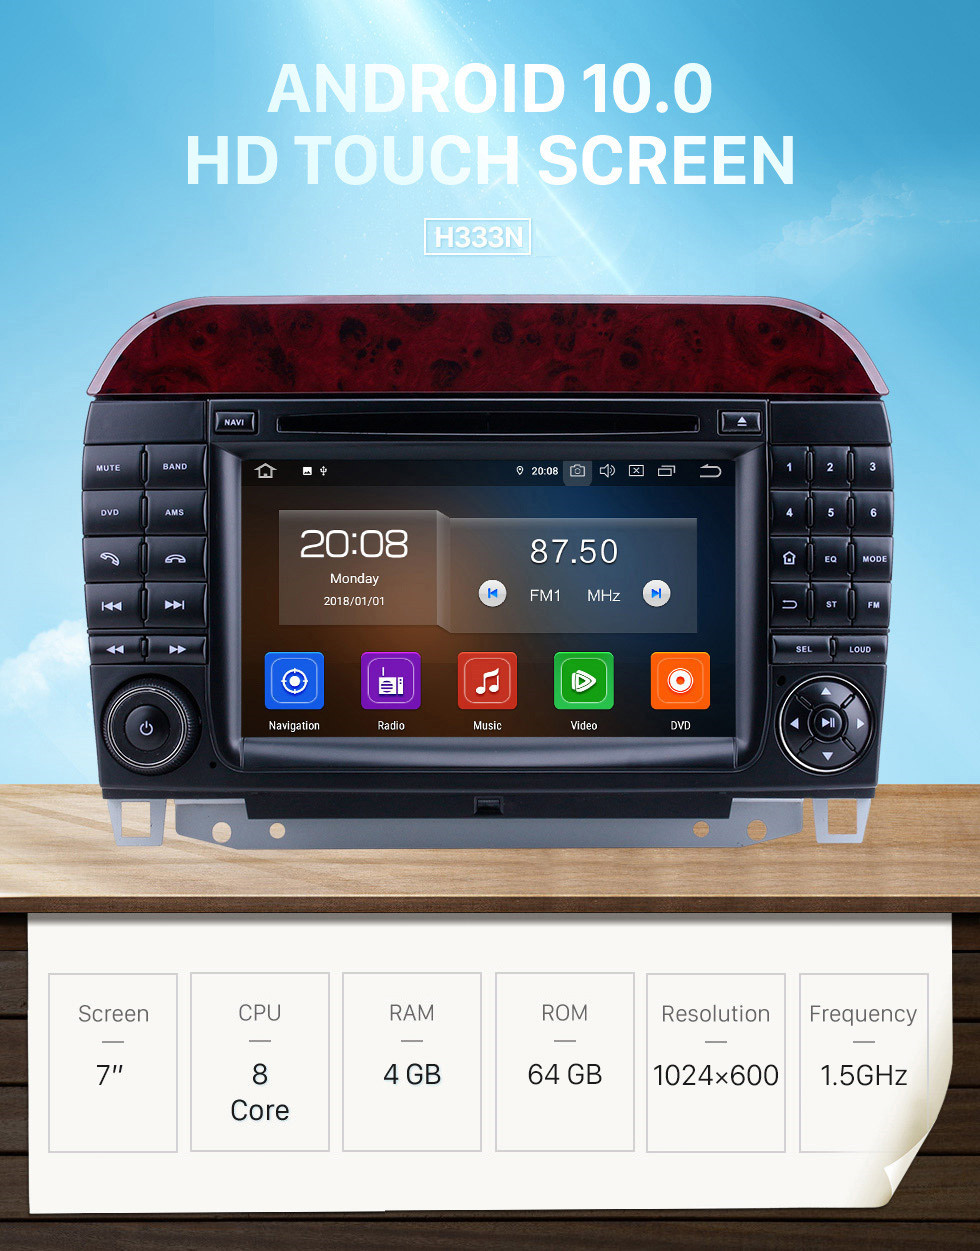 Seicane HD Touchscreen 7 inch Android 10.0 Radio for 1998-2005 Mercedes Benz S Class W220/S280/S320/S320 CDI/S400 CDI/S350/S430/S500/S600/S55 AMG/S63 AMG/S65 AMG with GPS Navigation Carplay Bluetooth support Digital TV